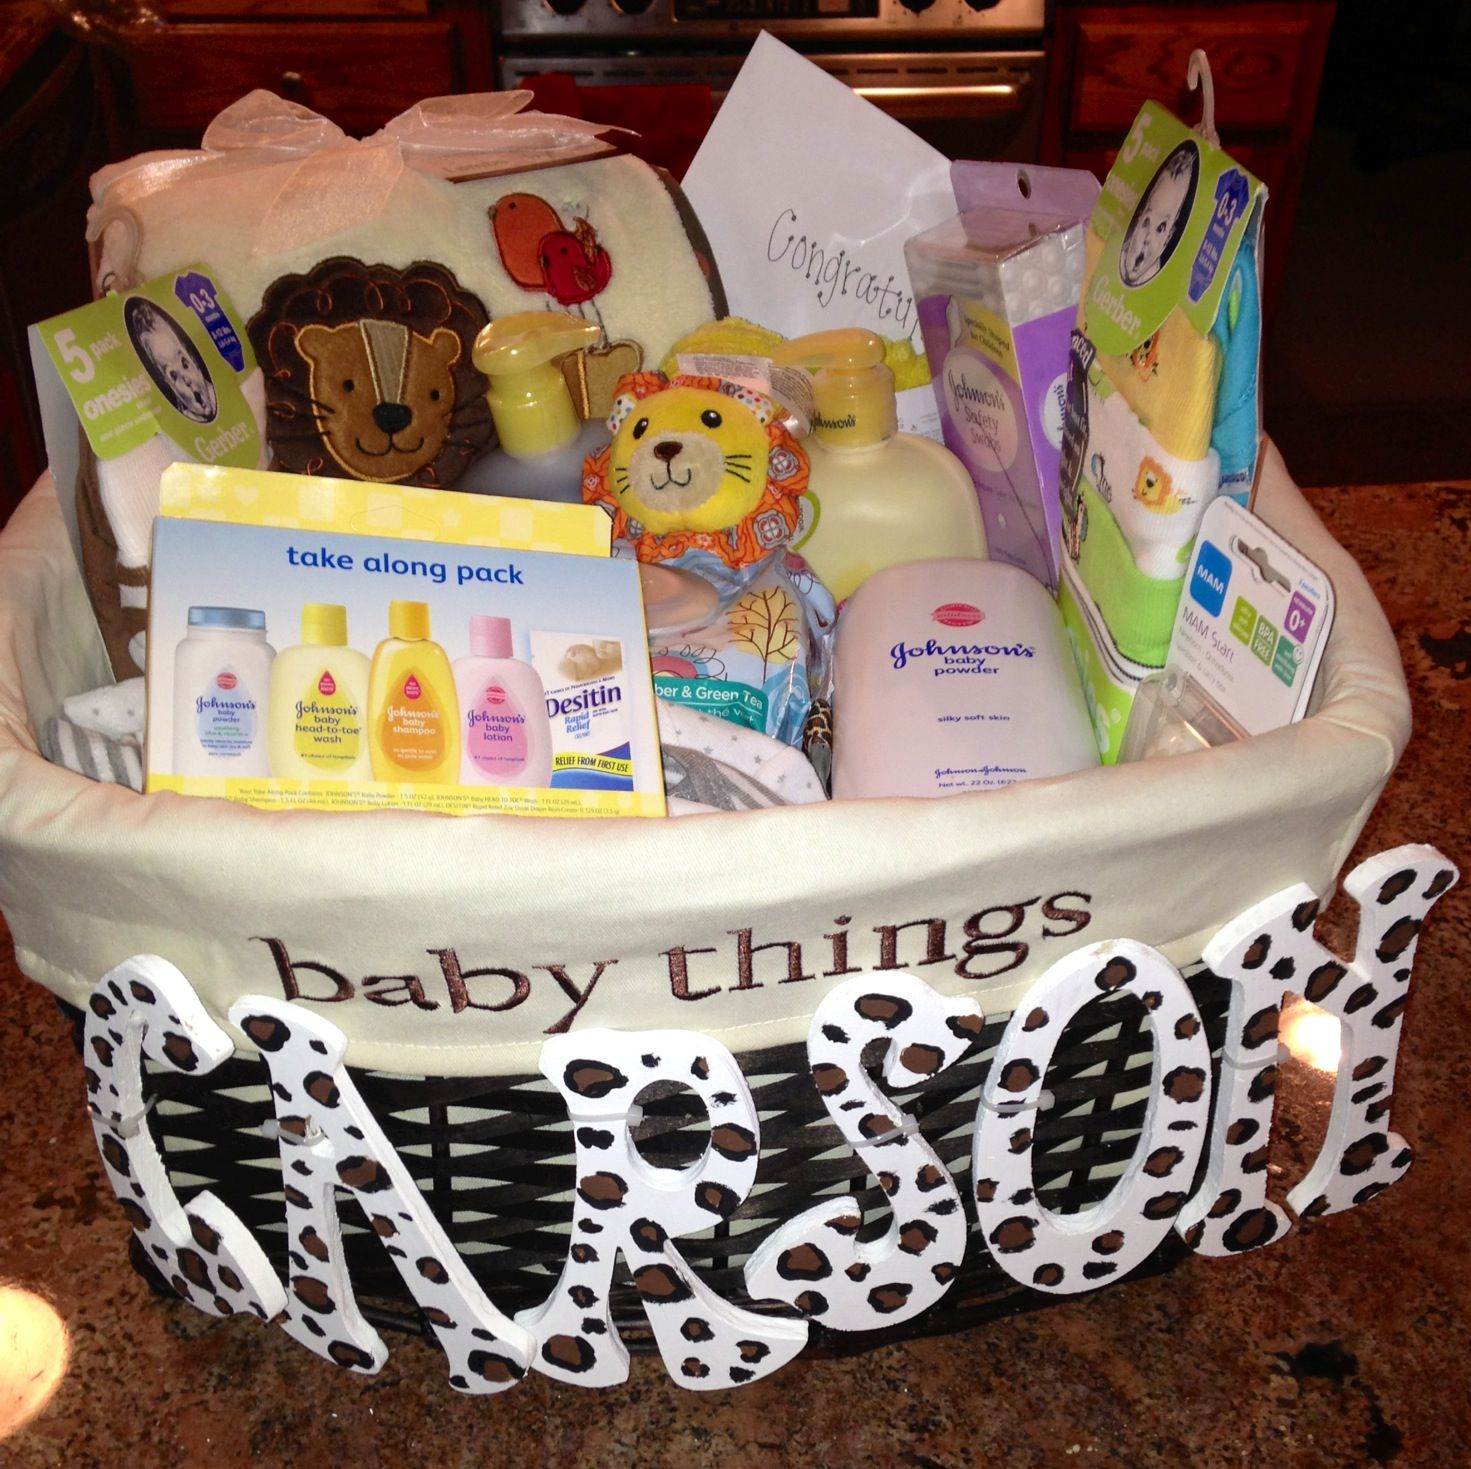 Baby shower gift i put together includes everything the